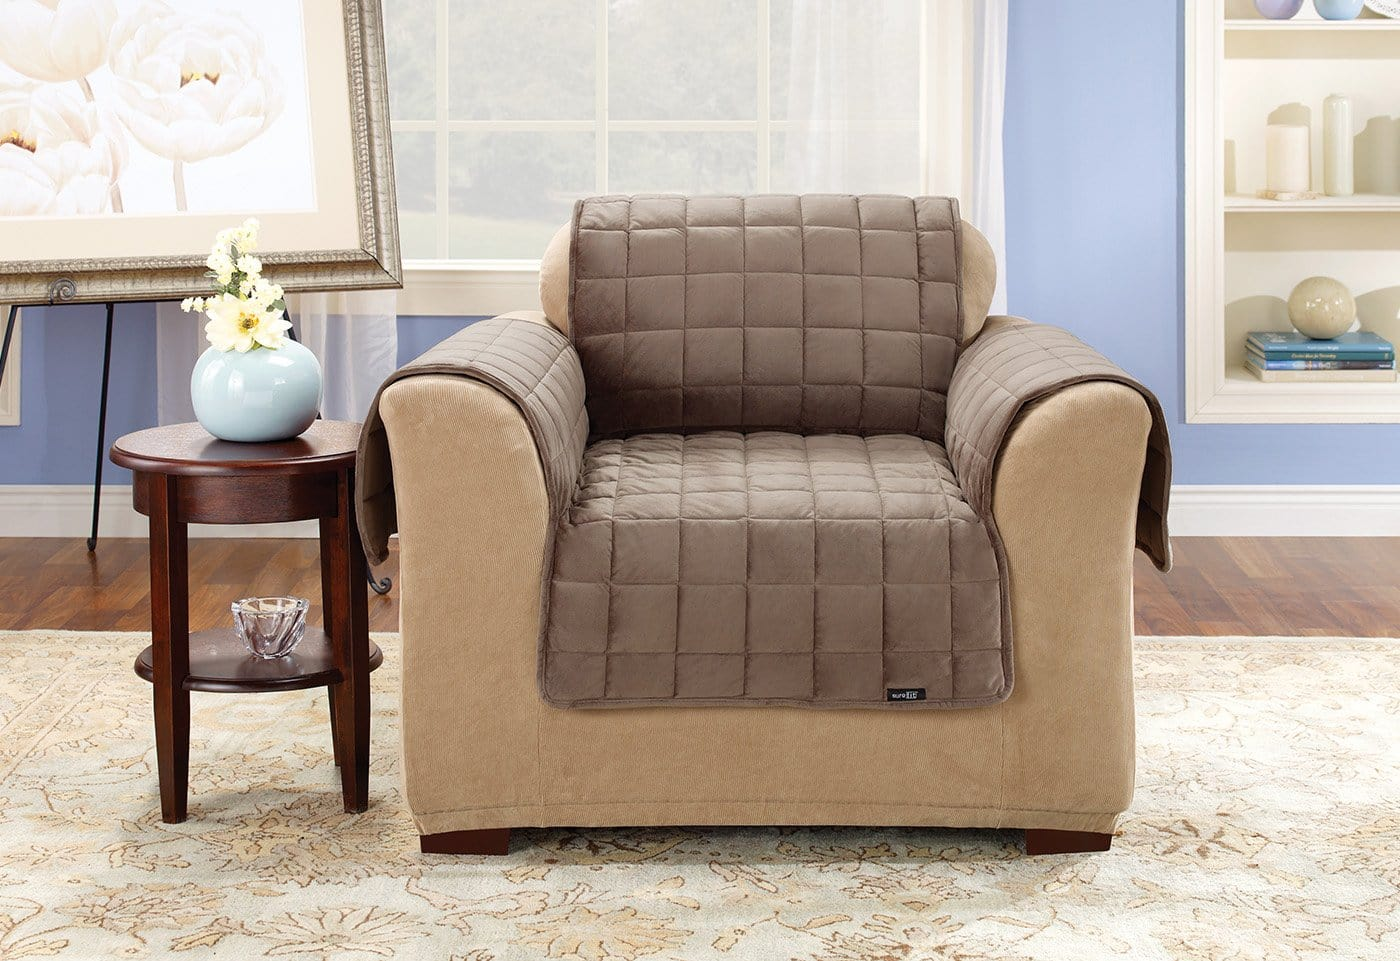 Etonnant Deluxe Comfort Chair Furniture Cover With Arms U2013 SureFit